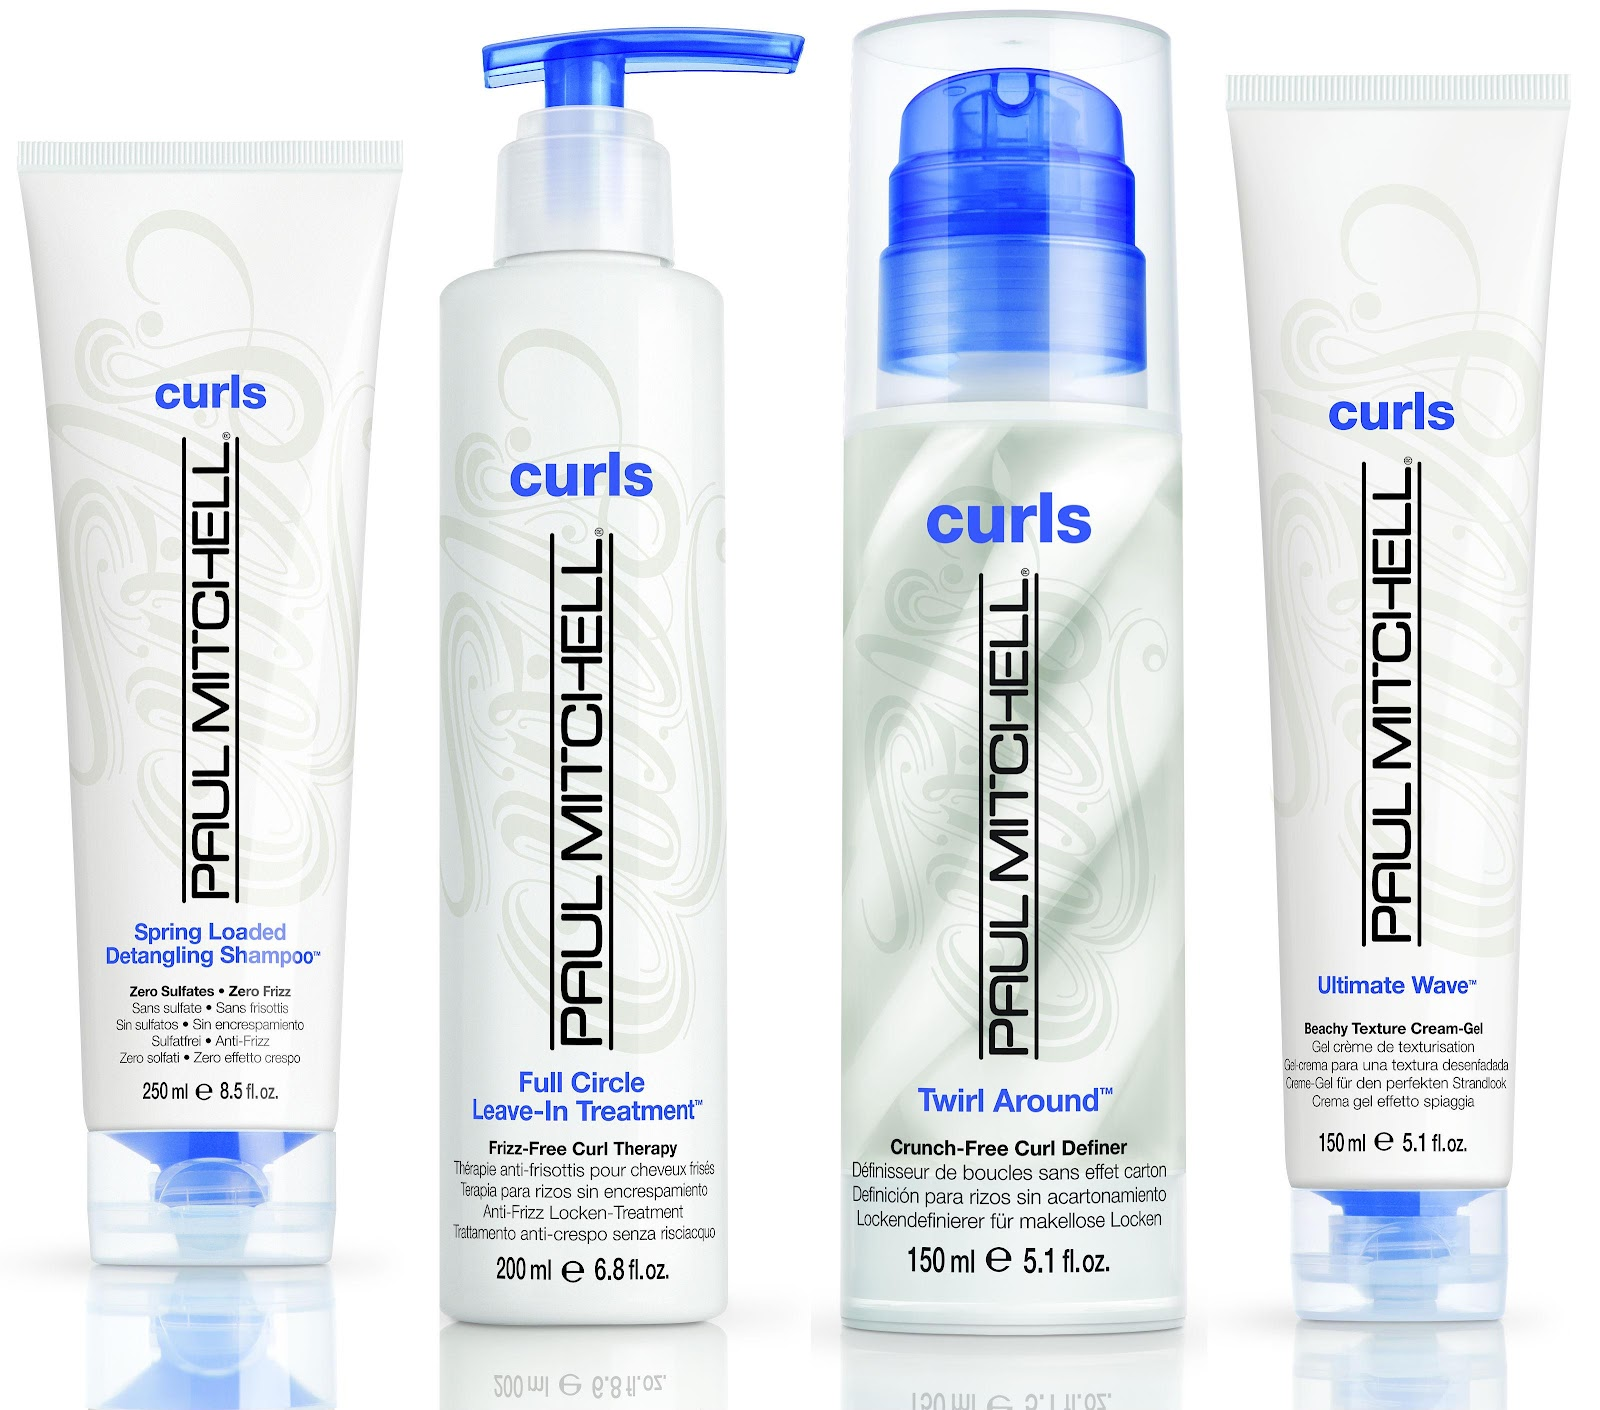 Cunningham: Paul Mitchell Curly Hair Products Review and Overview